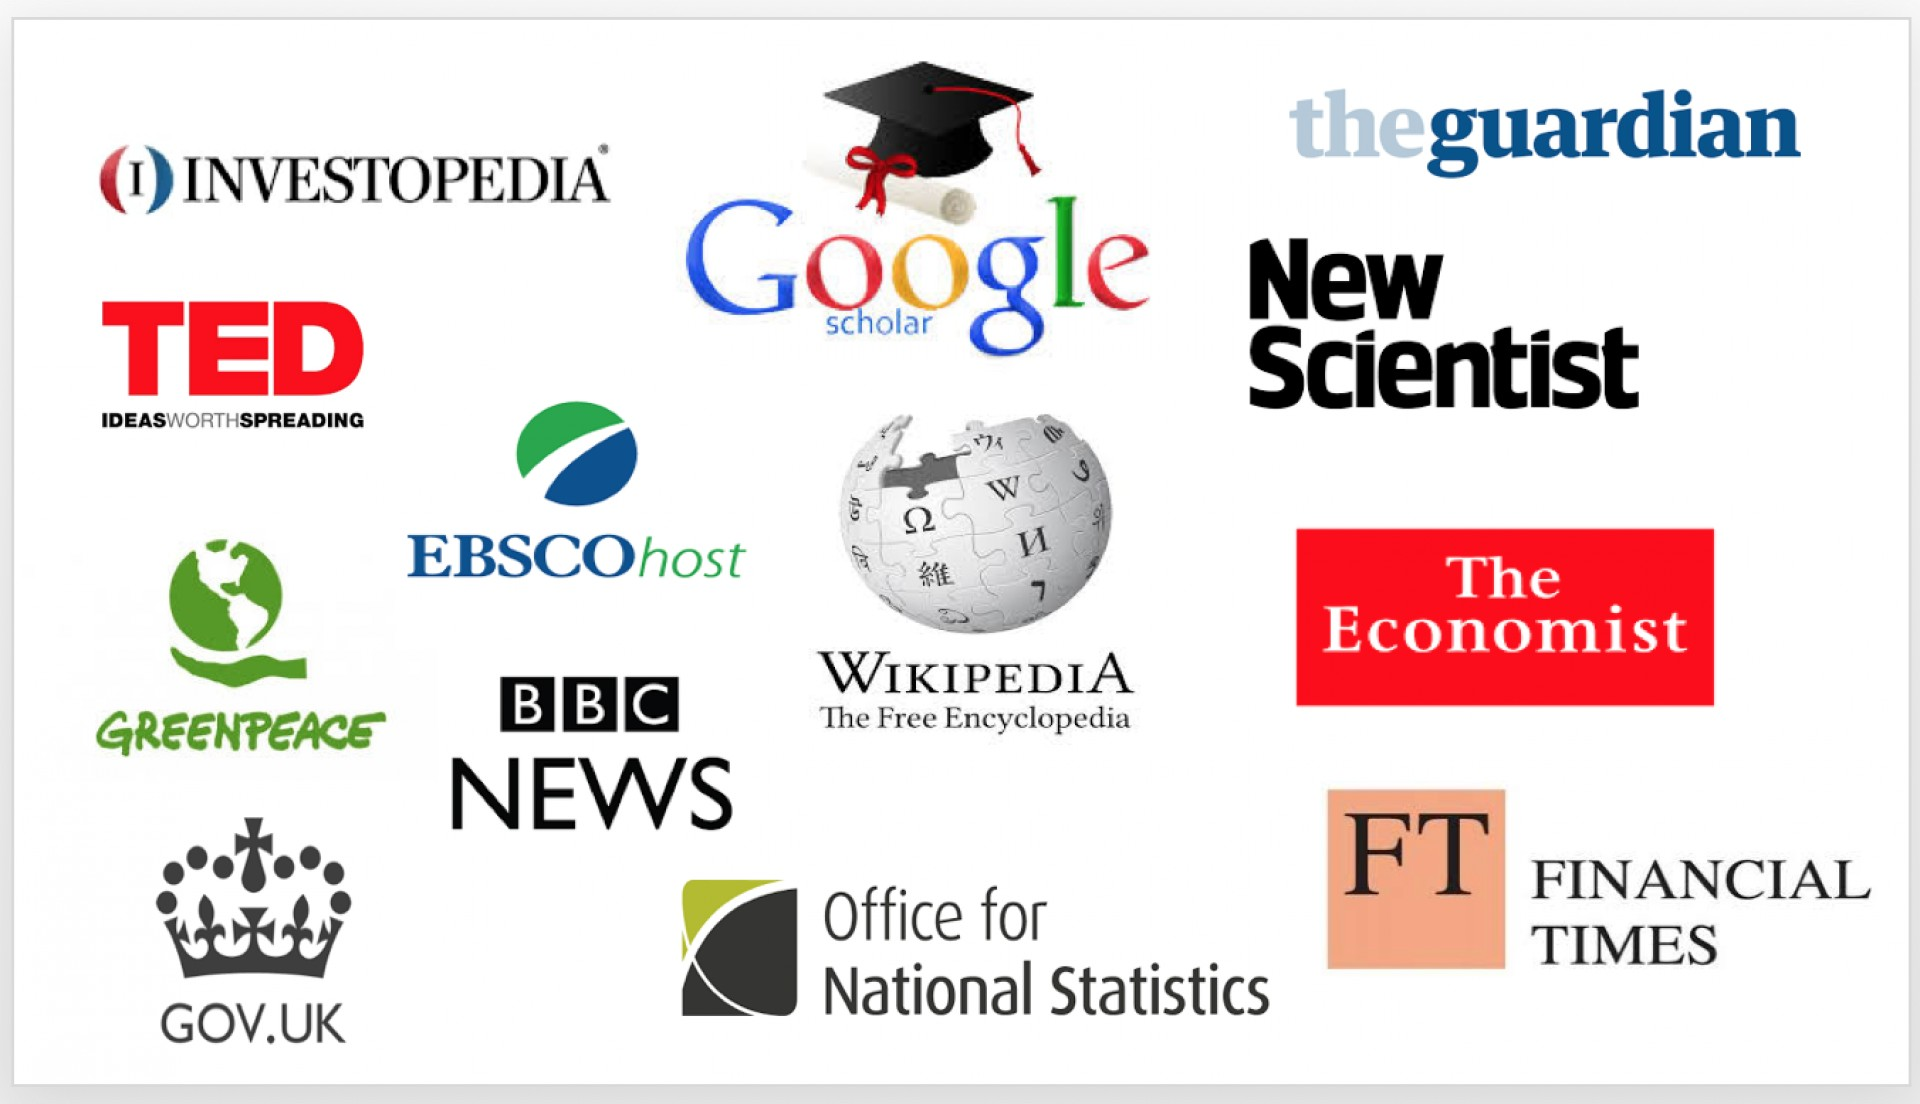 009 Credible Websites For Research Papers Paper Best 1920